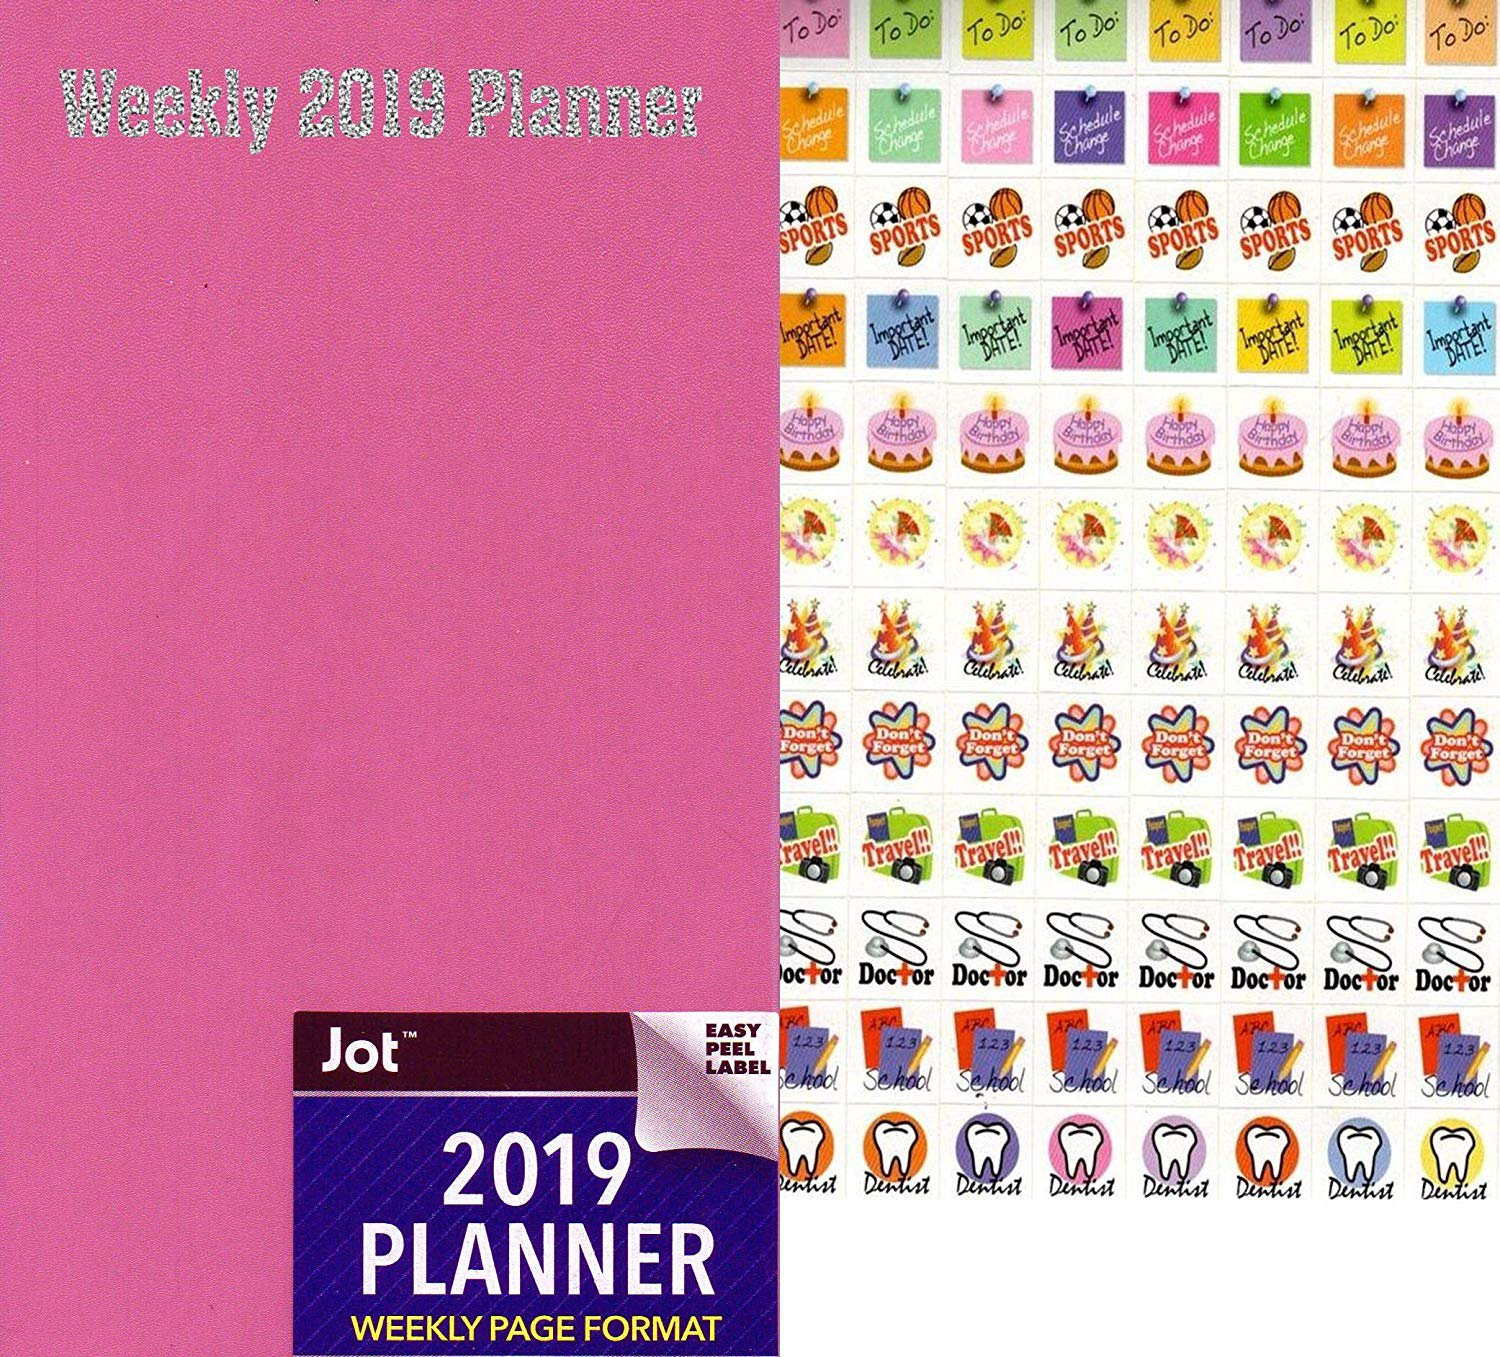 2019 Weekly Pocket Appointment Planner/Calendar/Organizer - Color (Pink) - with 120 Stickers